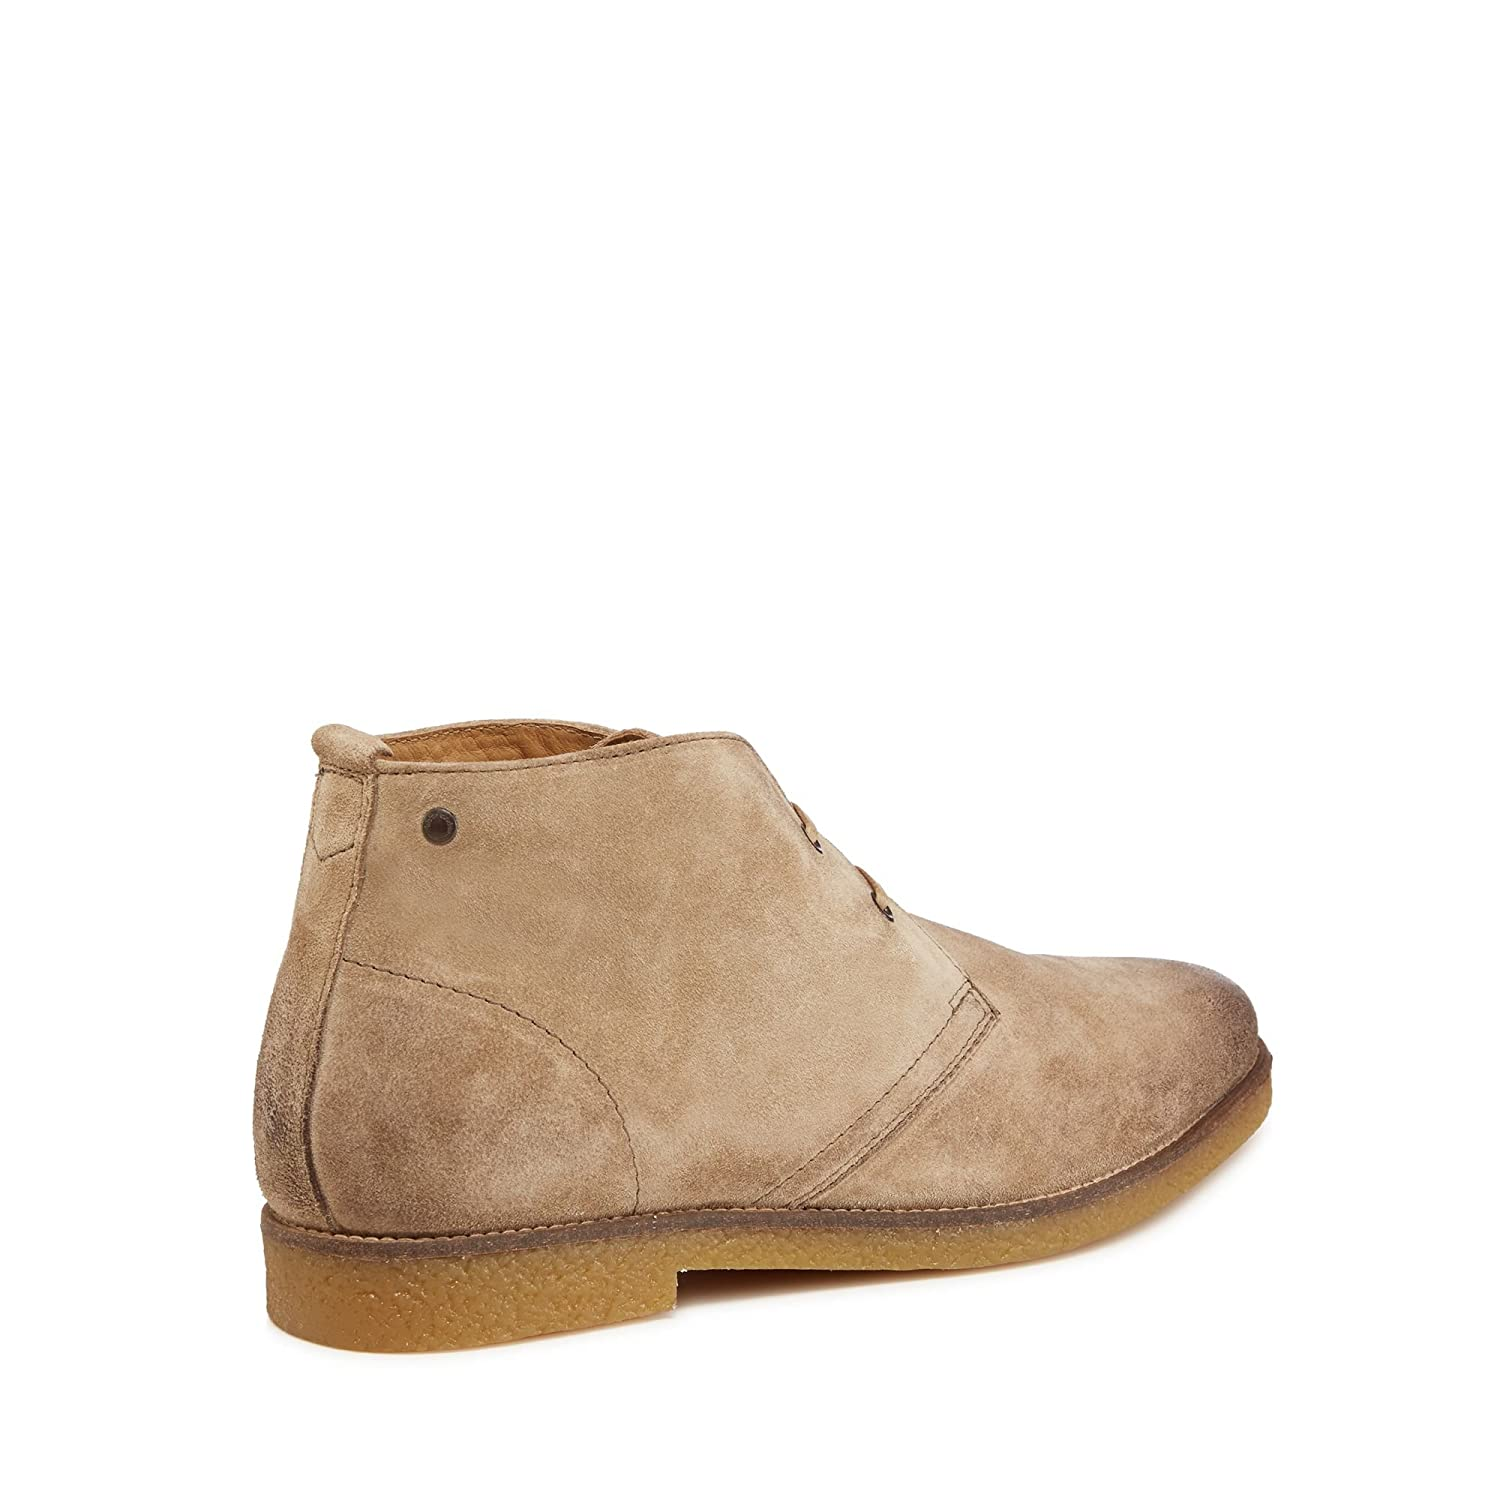 buy cheap store order online Taupe suede 'Perry' chukka boots top quality online cheap how much buy cheap latest 9cJPD9XZ8